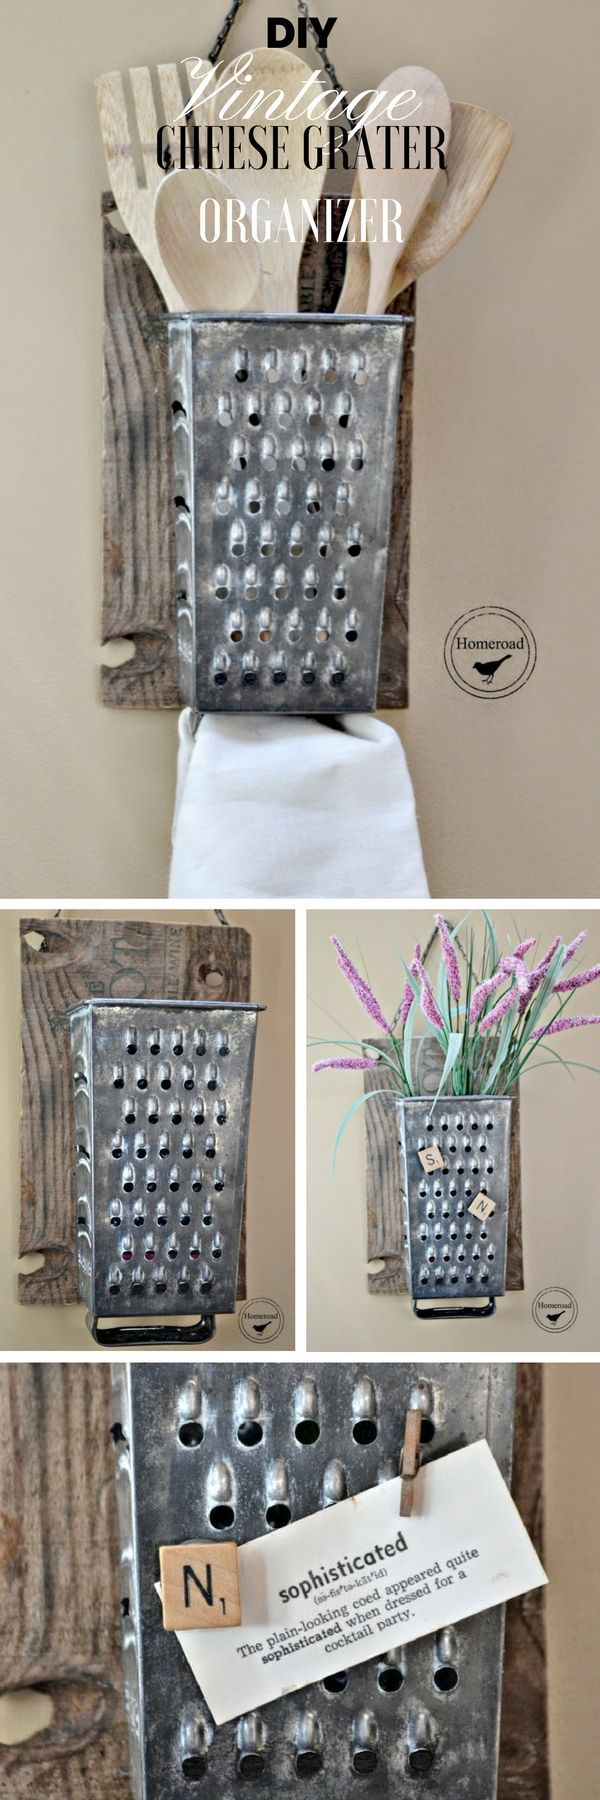 Best 25 Diy Kitchen Decor Ideas On Pinterest Home Decor Ideas Hidden Trash Can Kitchen And